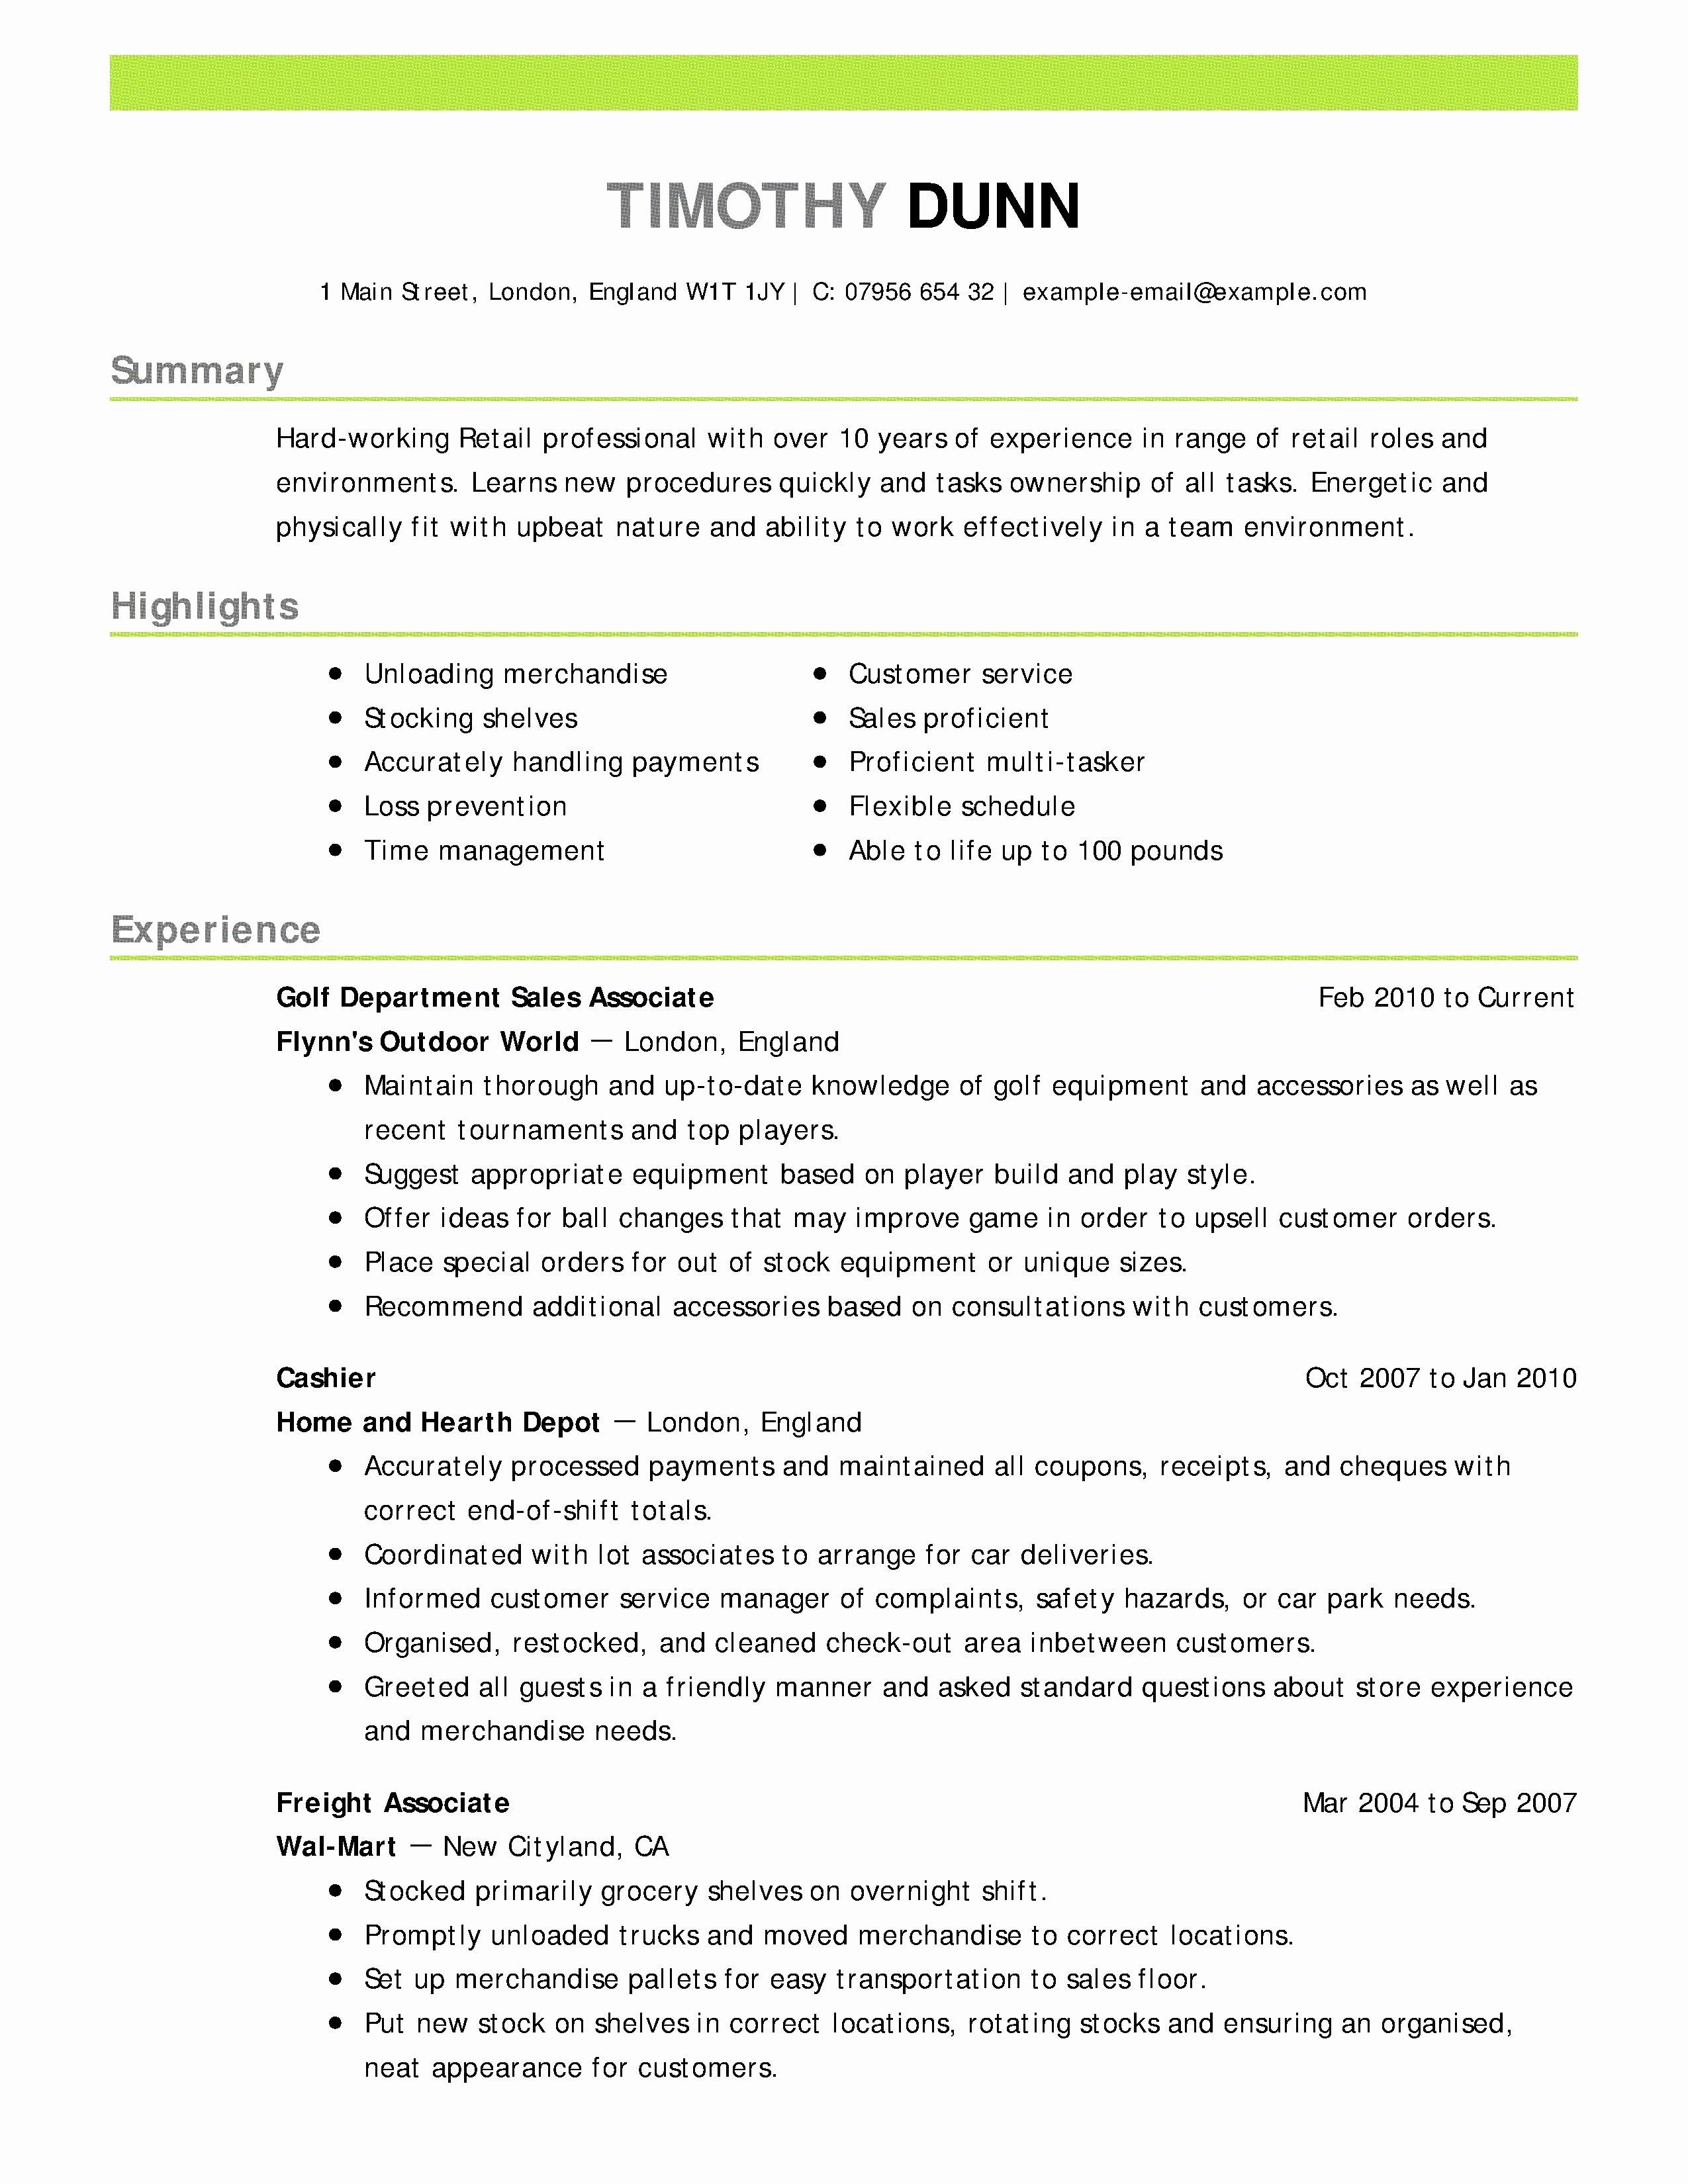 resume objective for career change Collection-Resume Objective for Career Change Fresh New Grapher Resume Sample Beautiful Resume Quotes 0d Best Resume 17-d